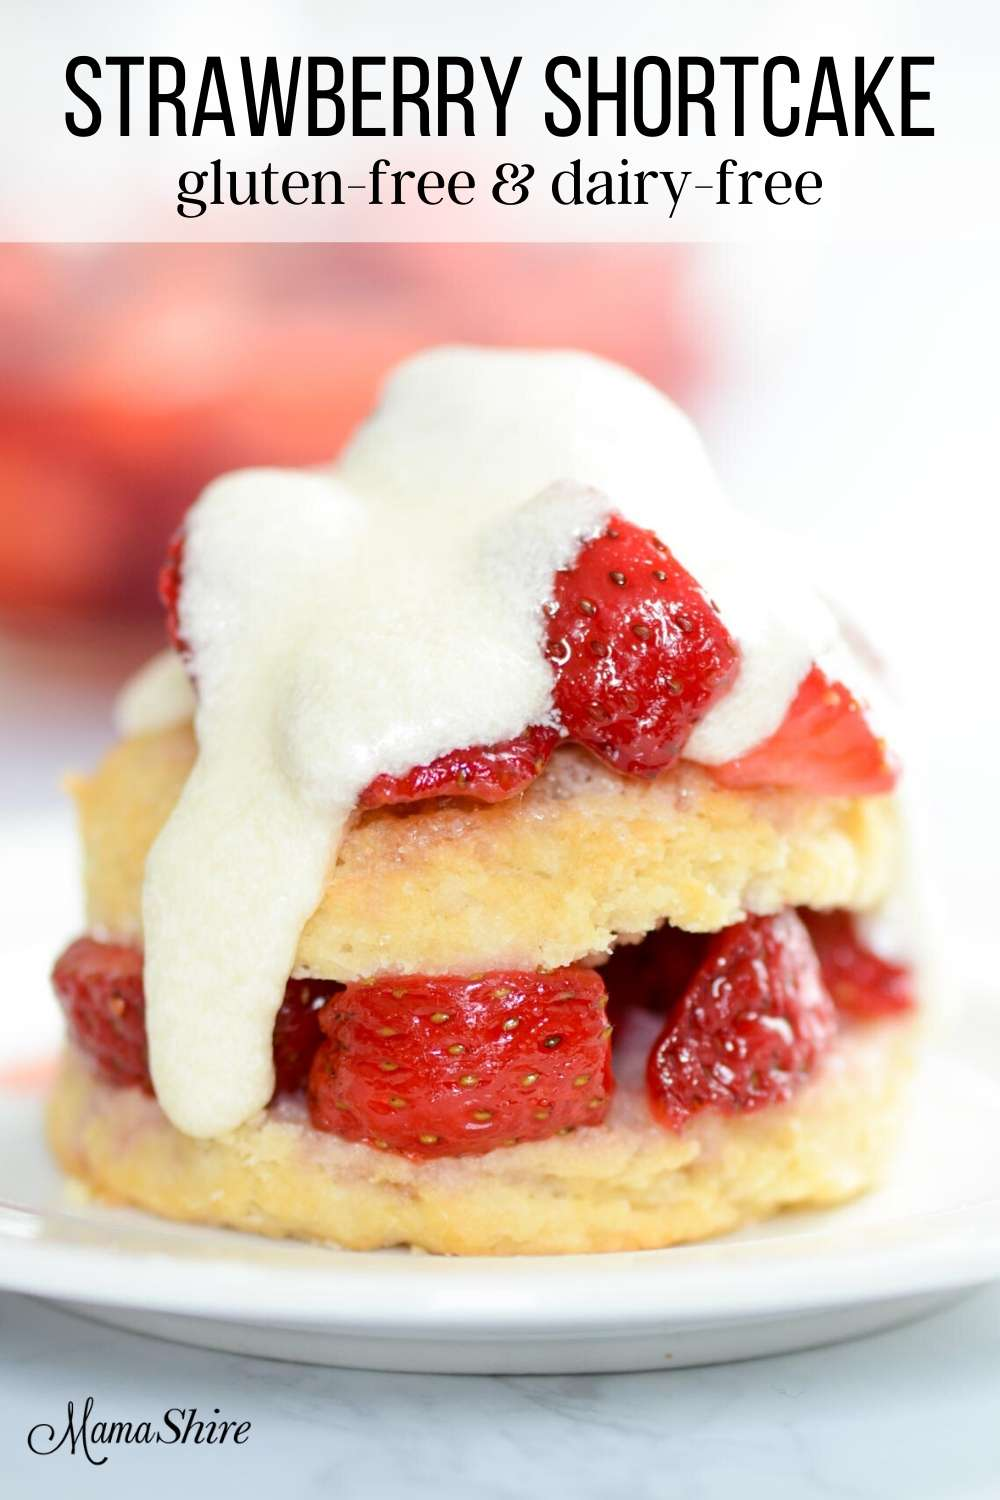 Strawberry Shortcake (gluten-free & dairy-free) made with icing.